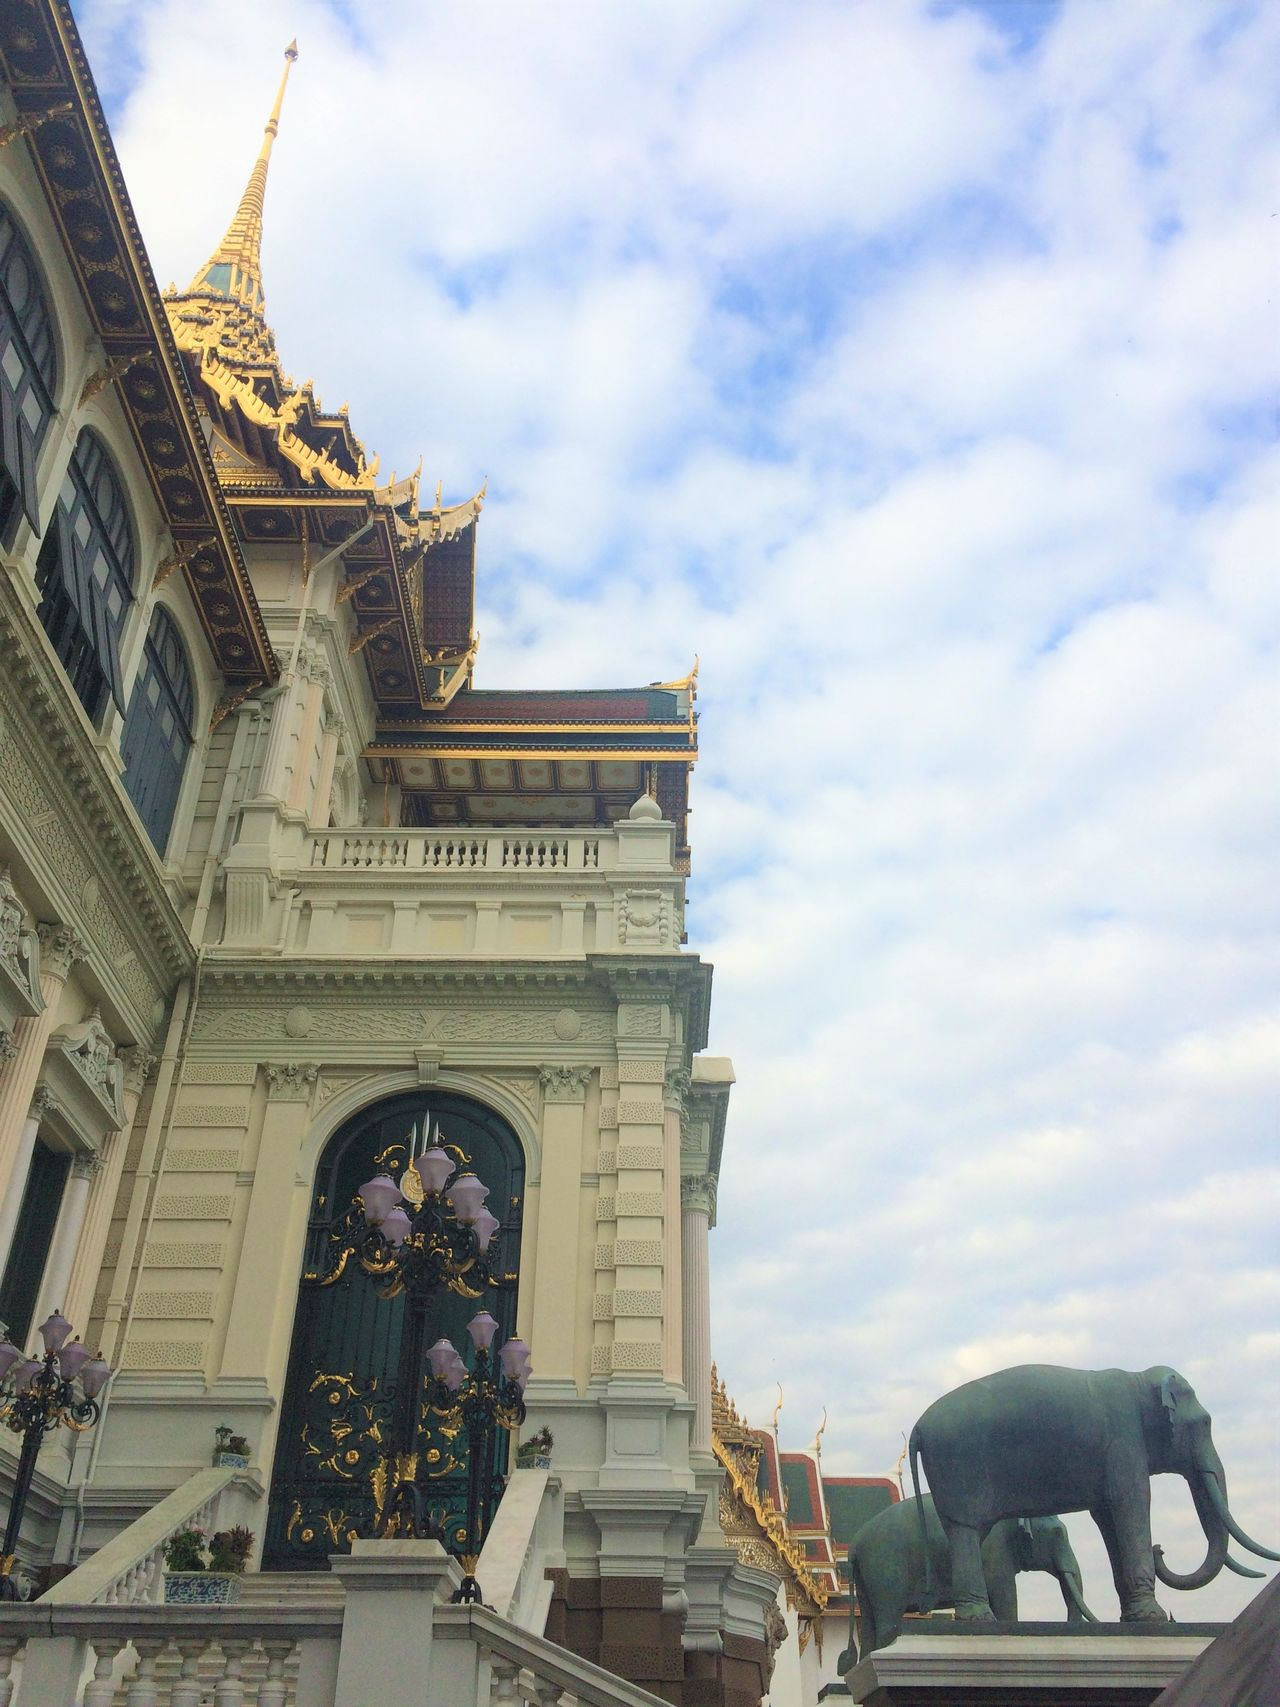 Grand Palace Bangkok (Thailand) Amazing View Architecture Architecture Bangkok Thailand. Building Exterior Built Structure City City Cloud - Sky Cultures Day History Journey King No People Outdoors Palace Photo Sky Thailand Travel Travel Destinations